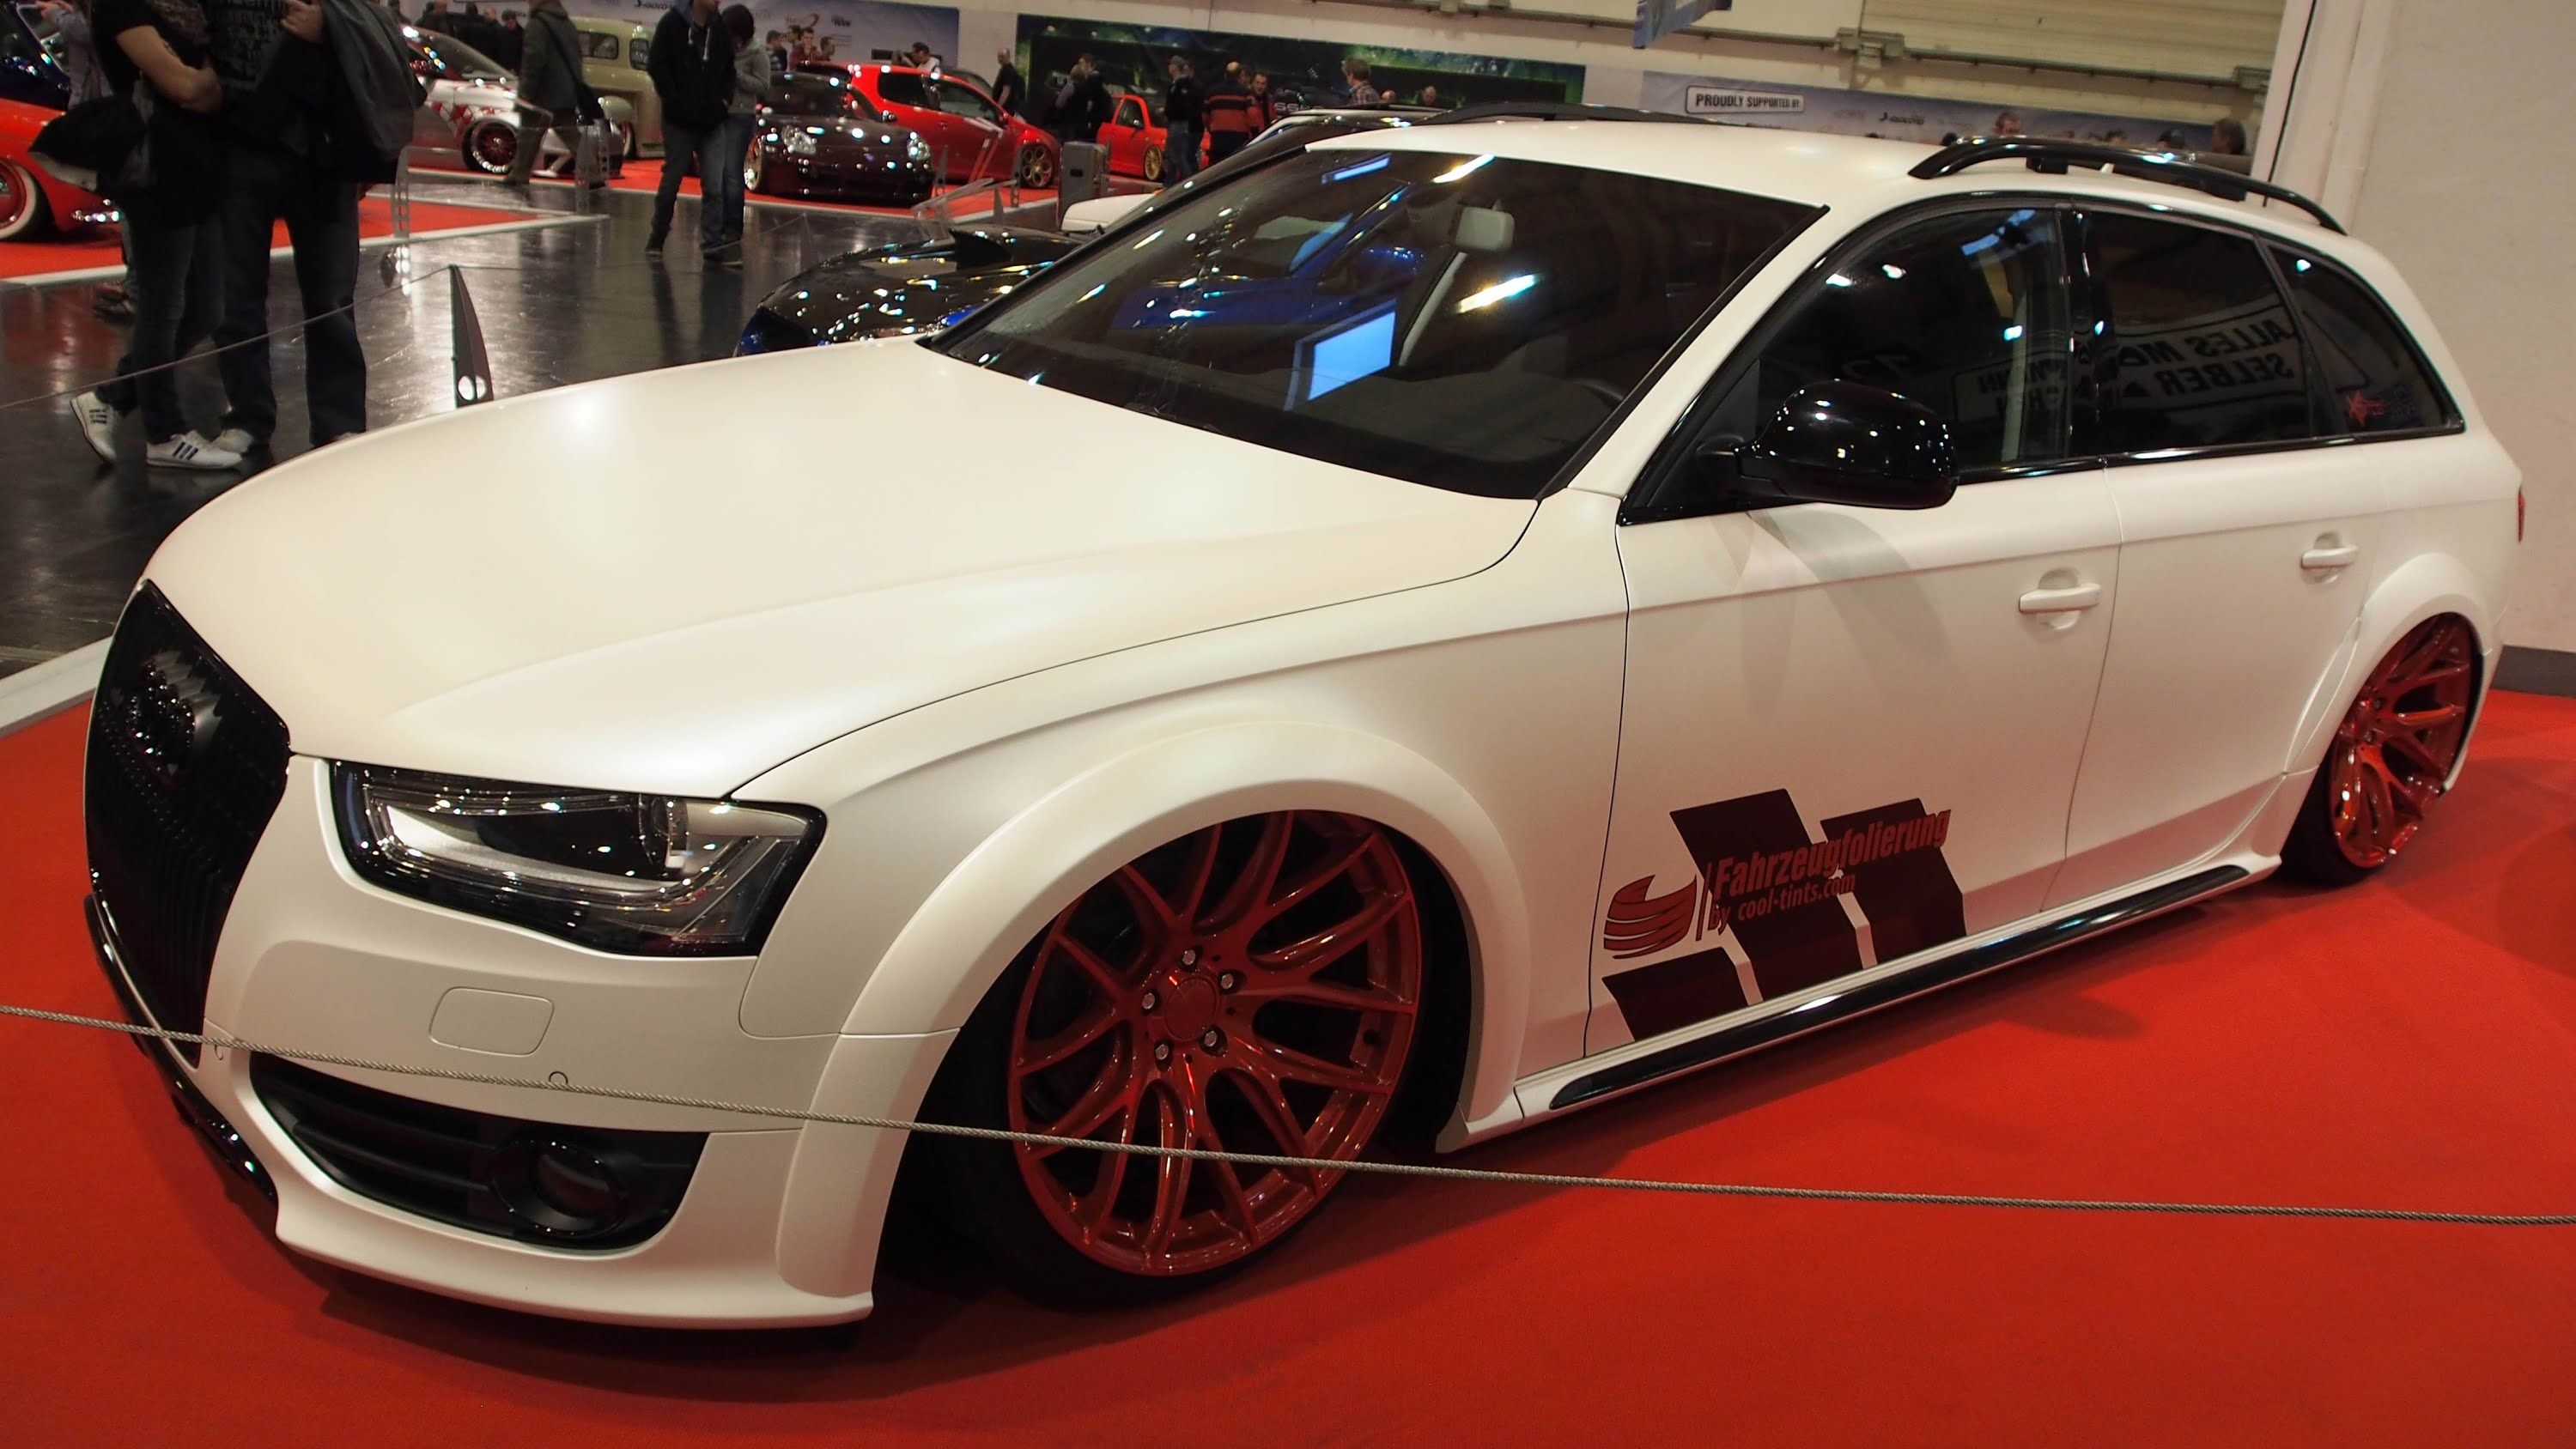 Audi A4 Allroad B8 at Essen Motorshow Exterior Walkaround